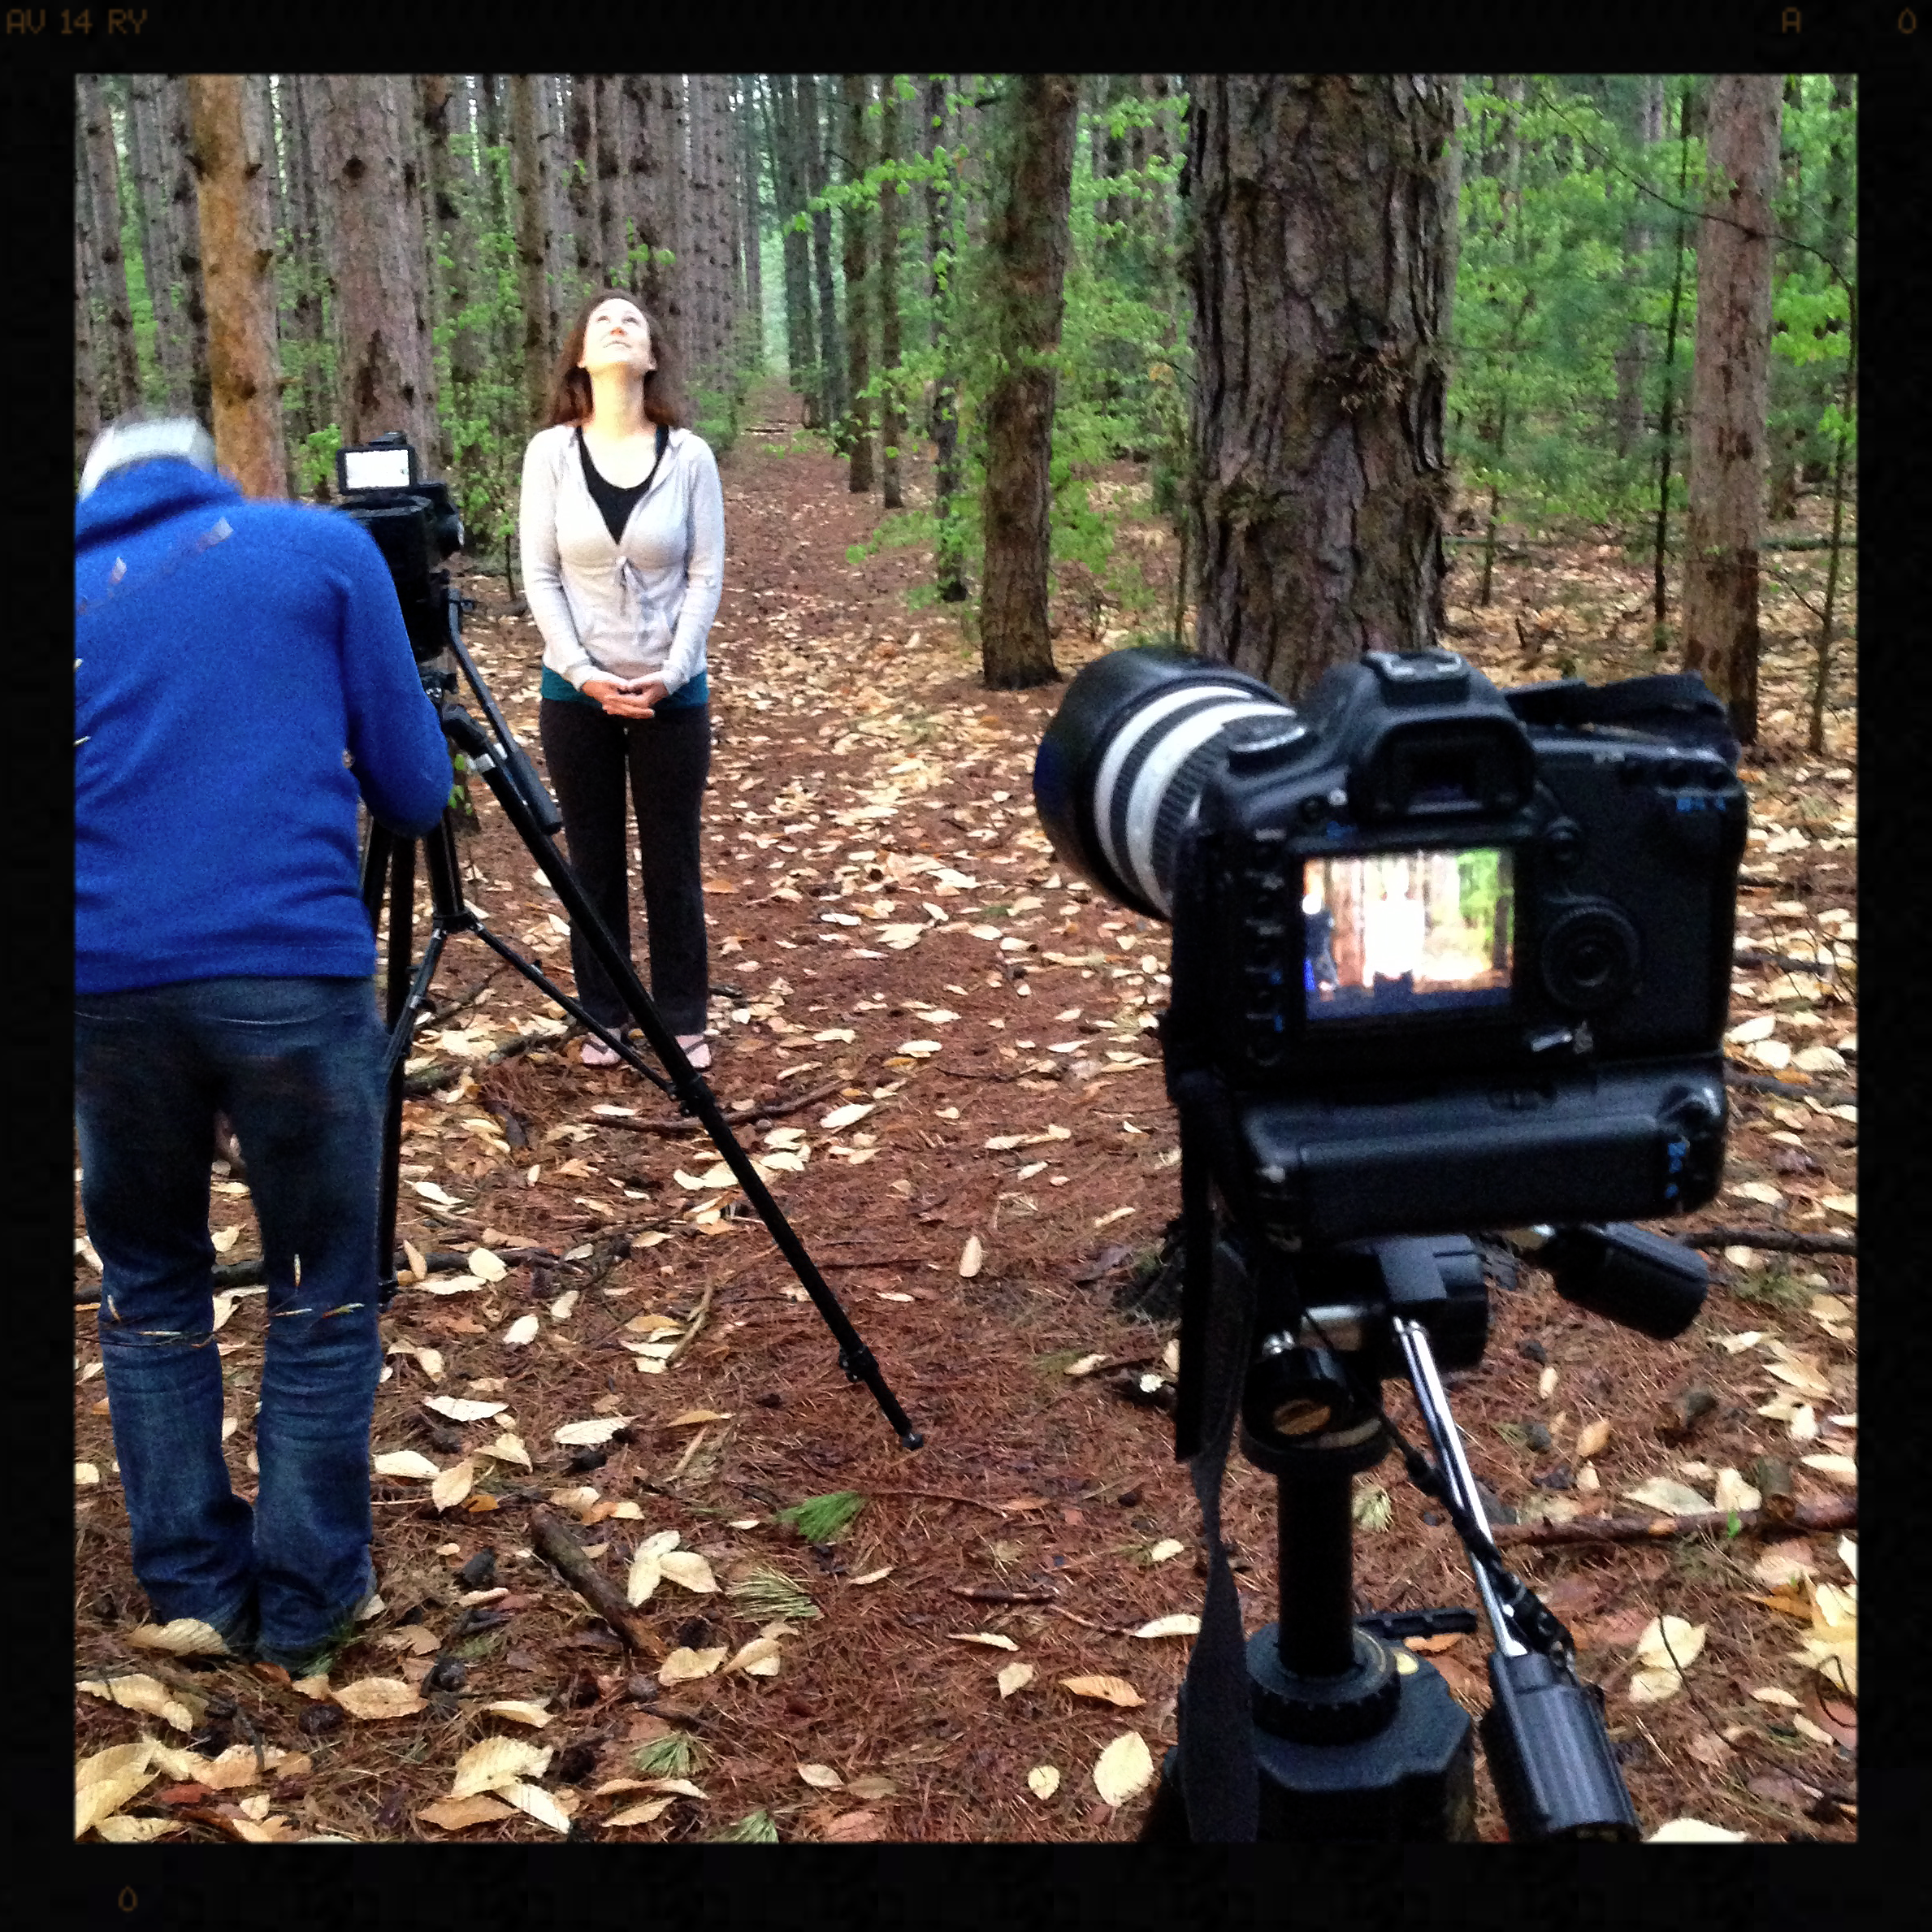 In the woods at Rosy Mound, Bethany Cramer was incredible.